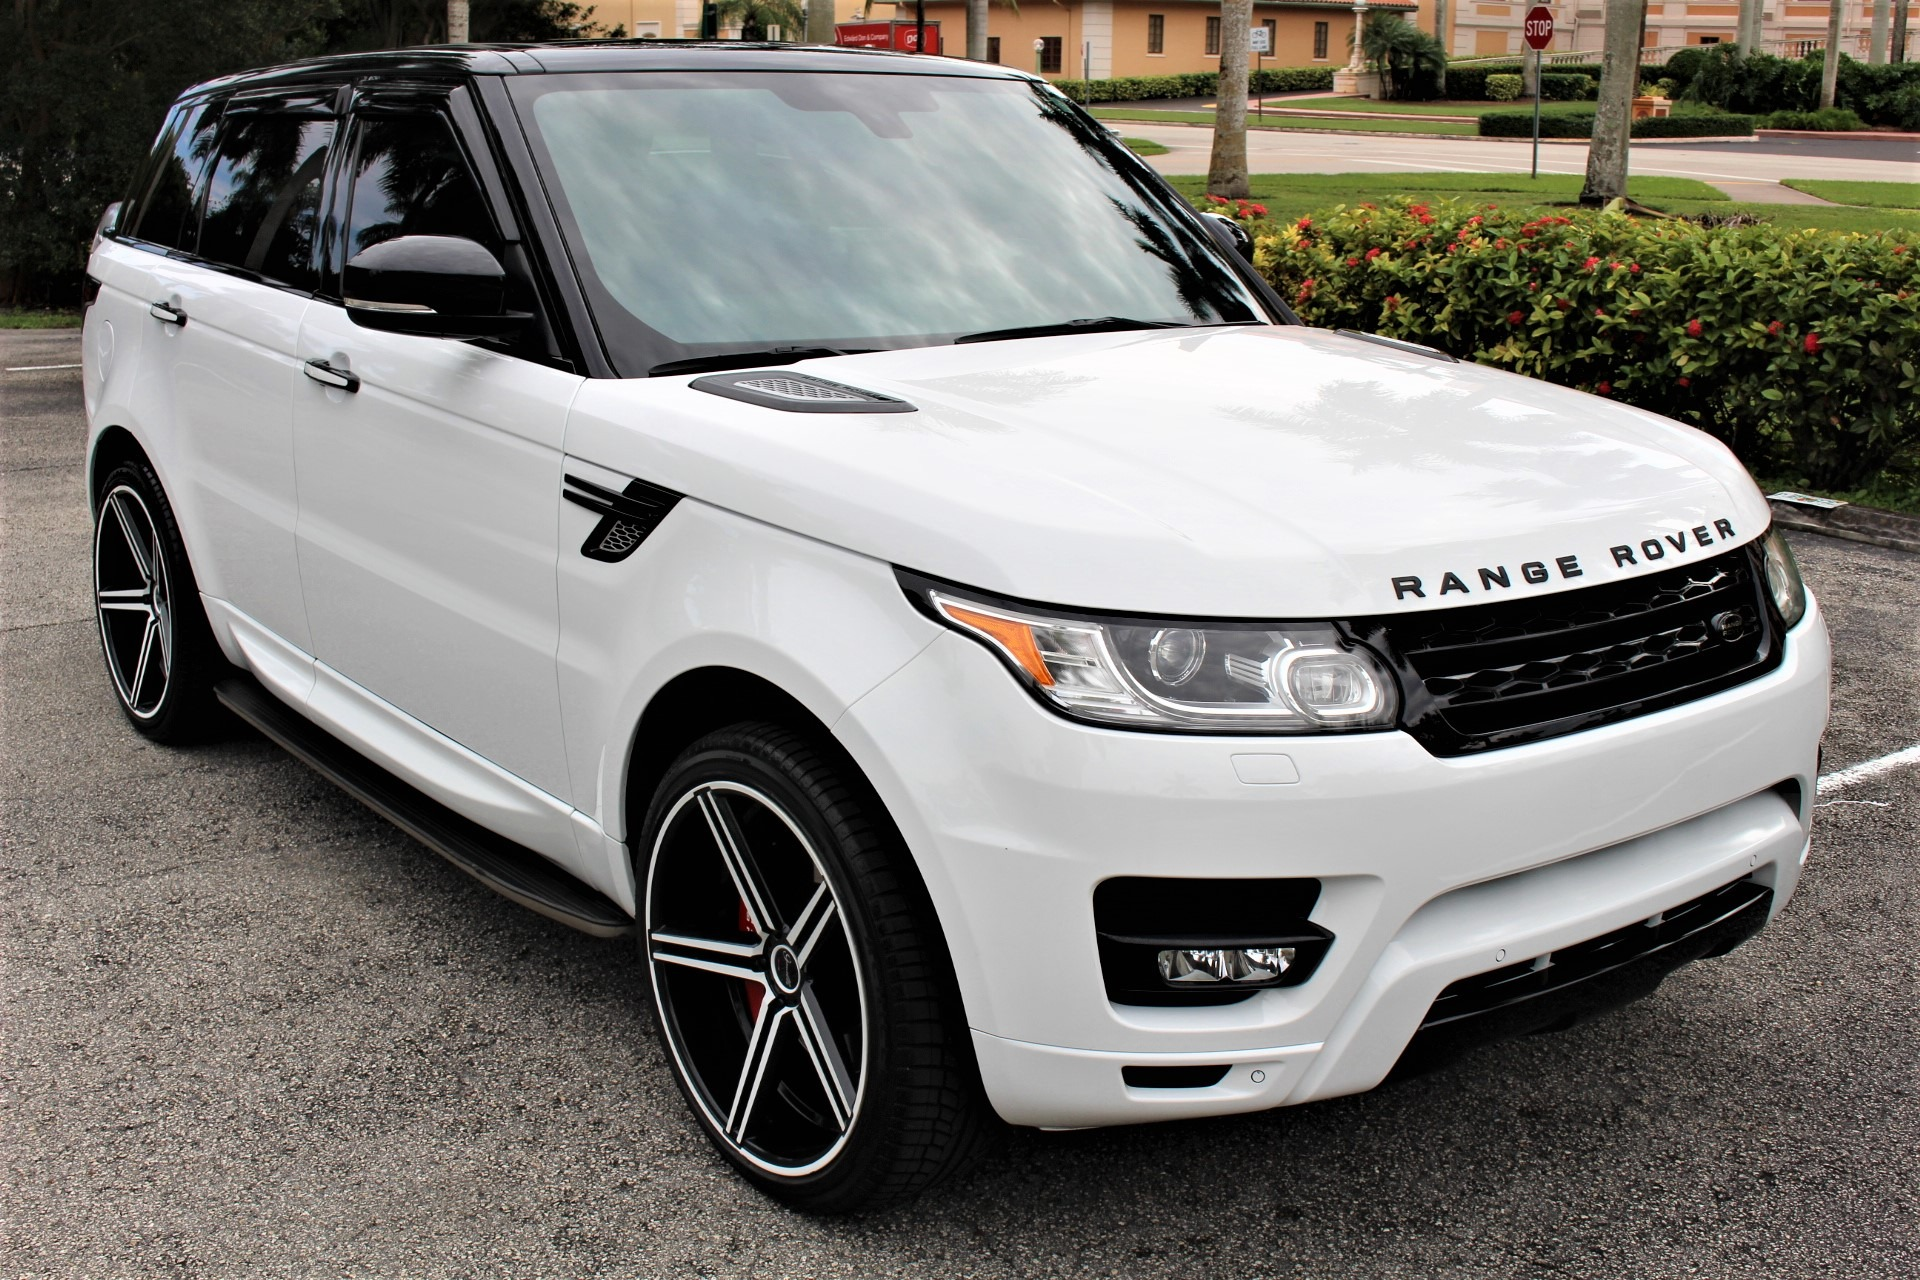 Used 2015 Land Rover Range Rover Sport HSE for sale $58,850 at The Gables Sports Cars in Miami FL 33146 4